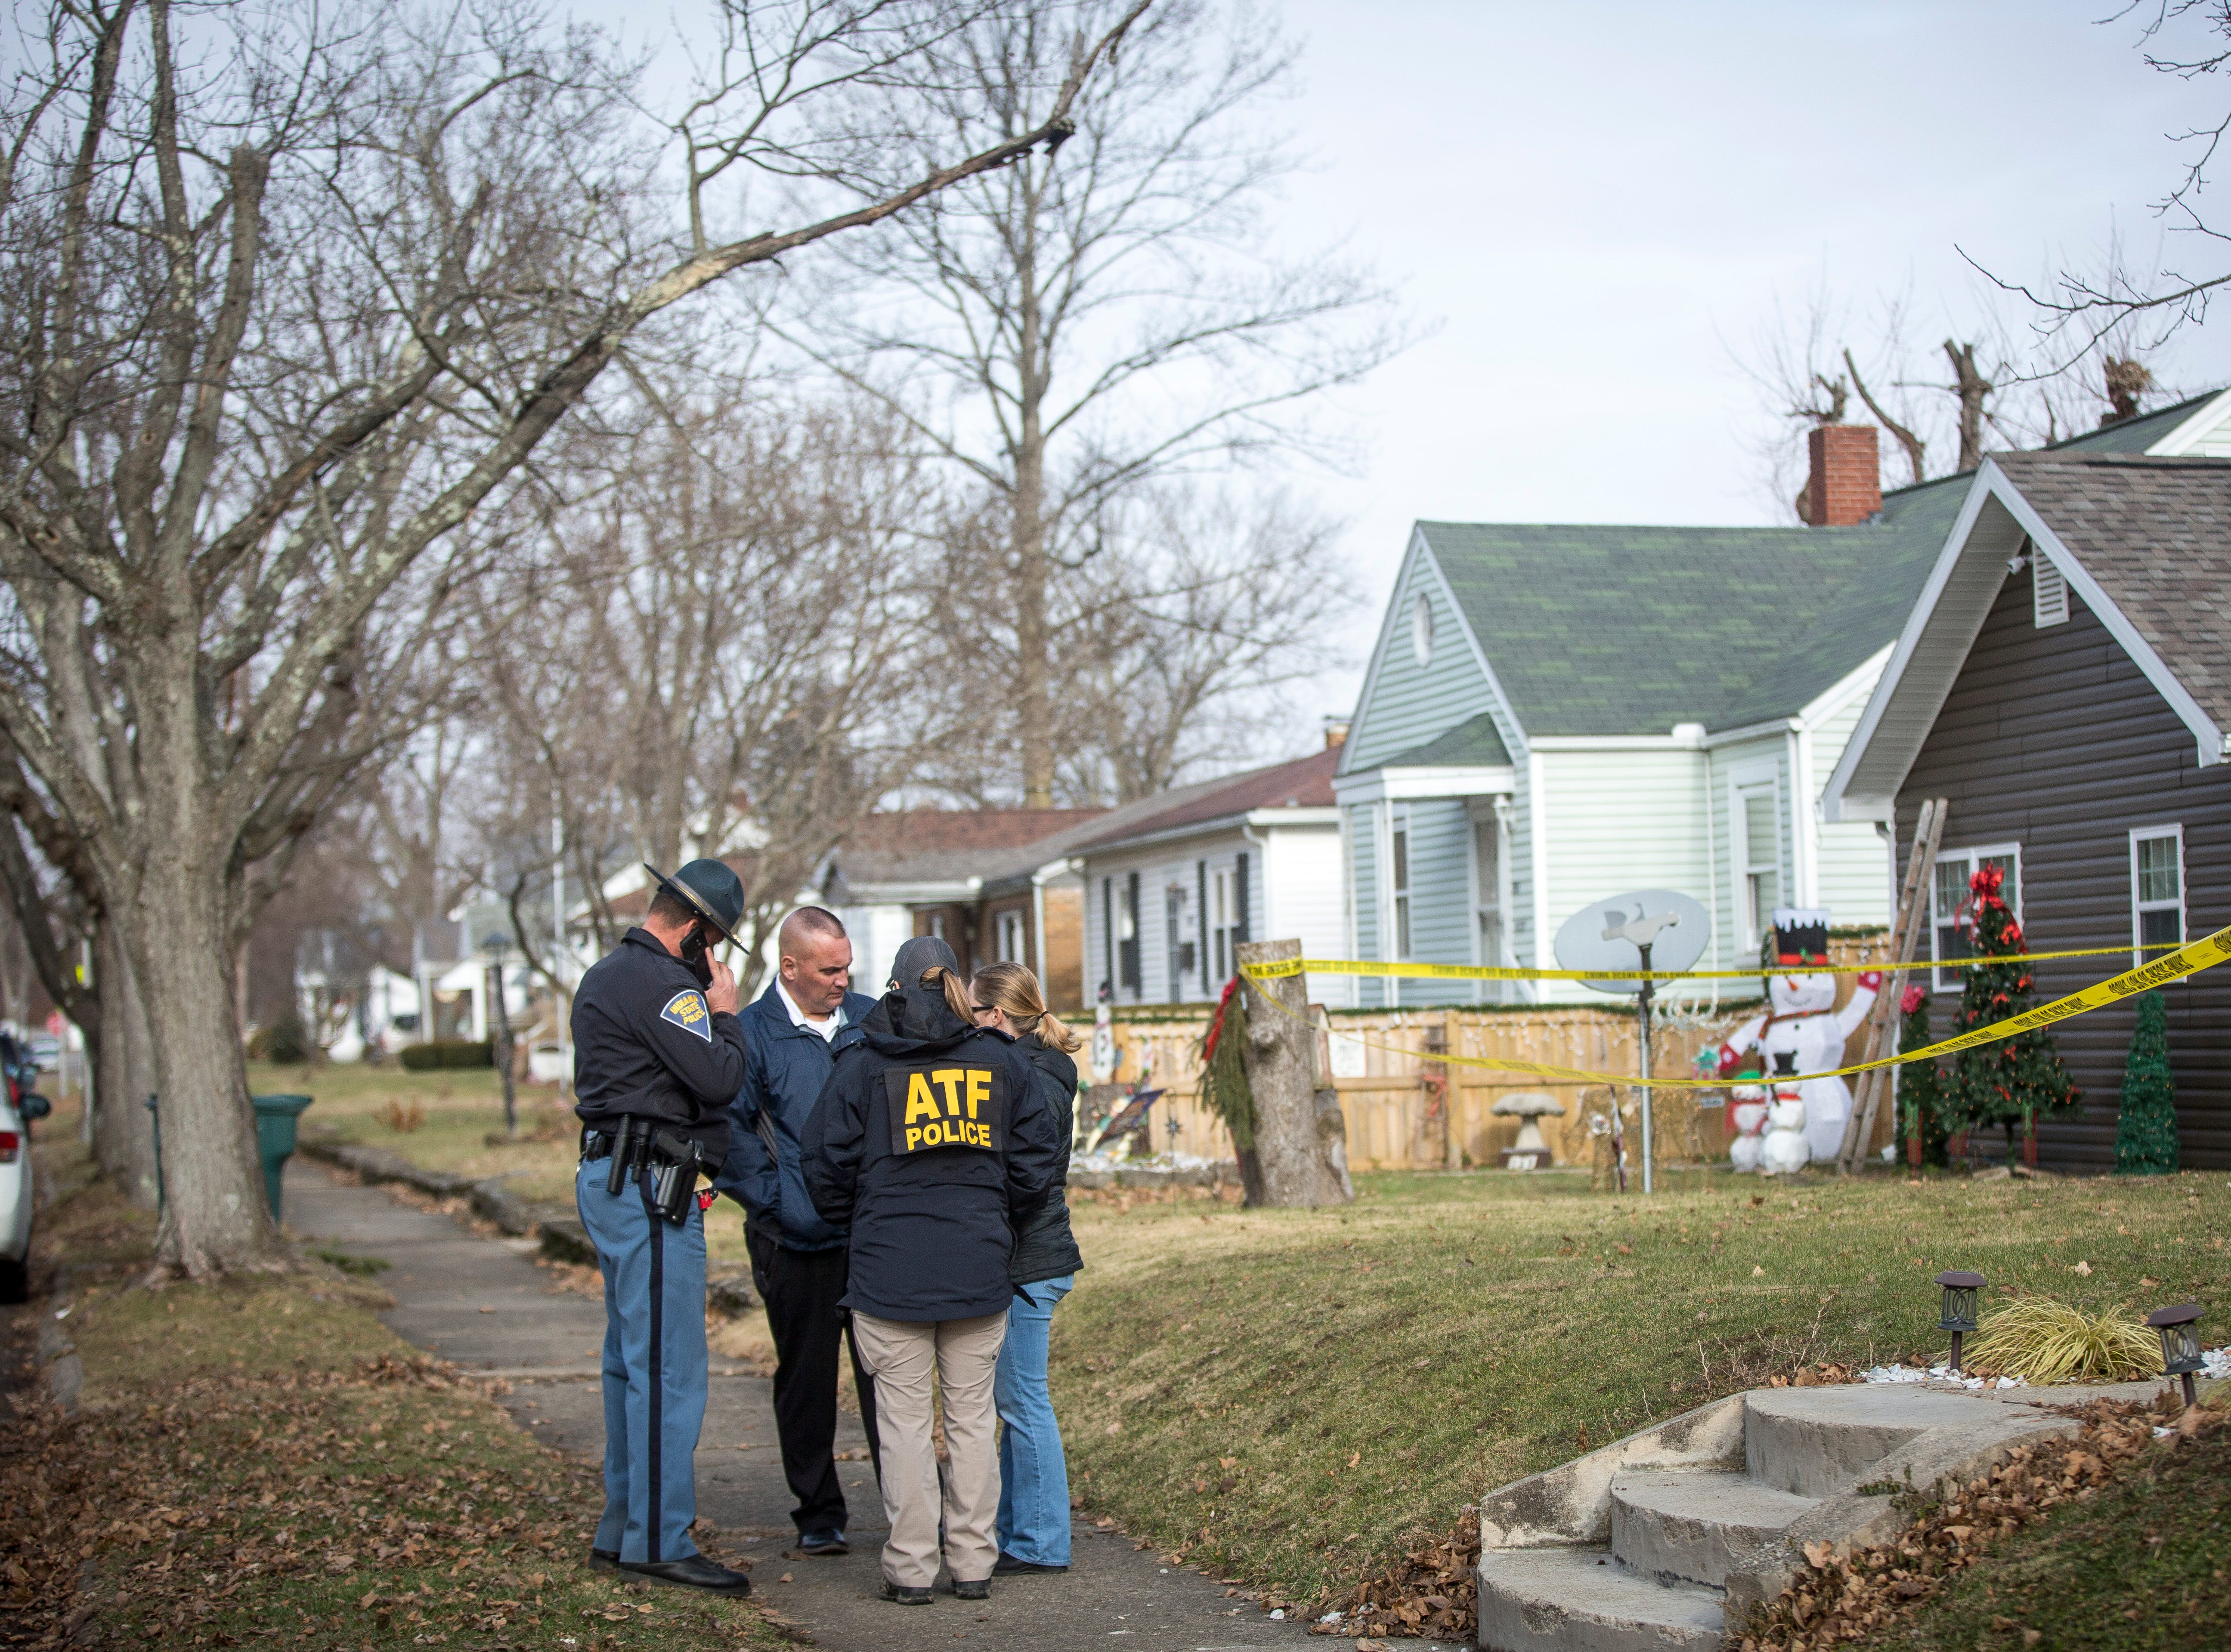 Police enter a residence in the 100 block of S.W. 16th St. with a search warrant related to the active shooter at Dennis Intermediate School. The teenage suspect took his own life after an altercation with police at the school.